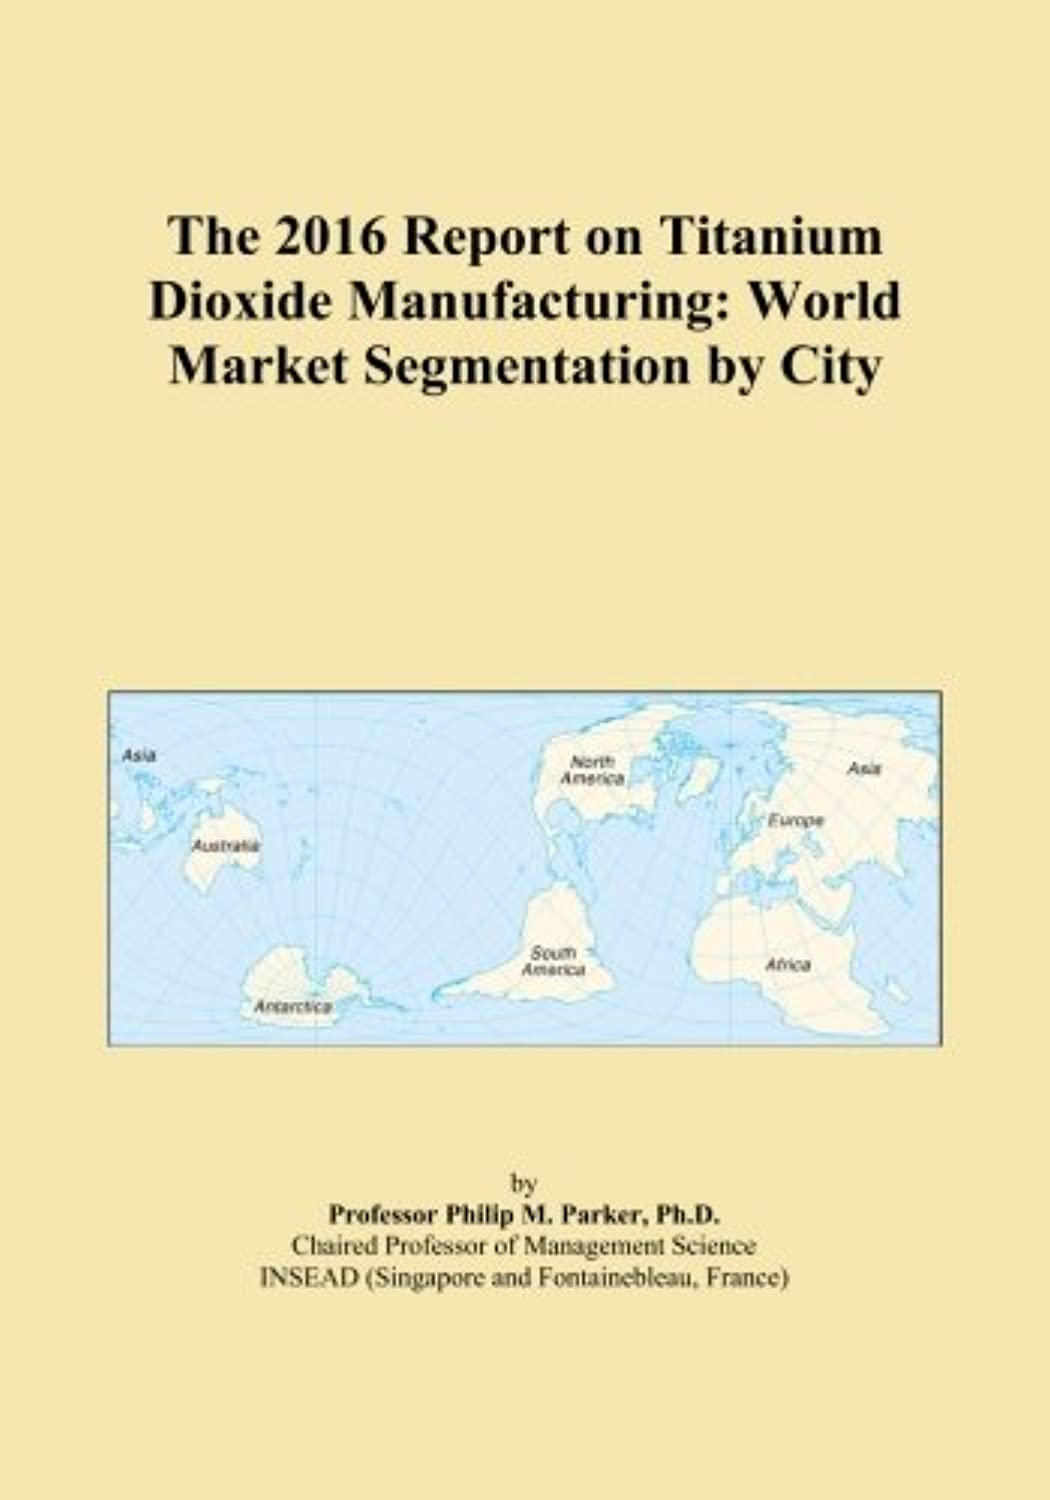 The 2016 Report on Titanium Dioxide Manufacturing: World Market Segmentation by City